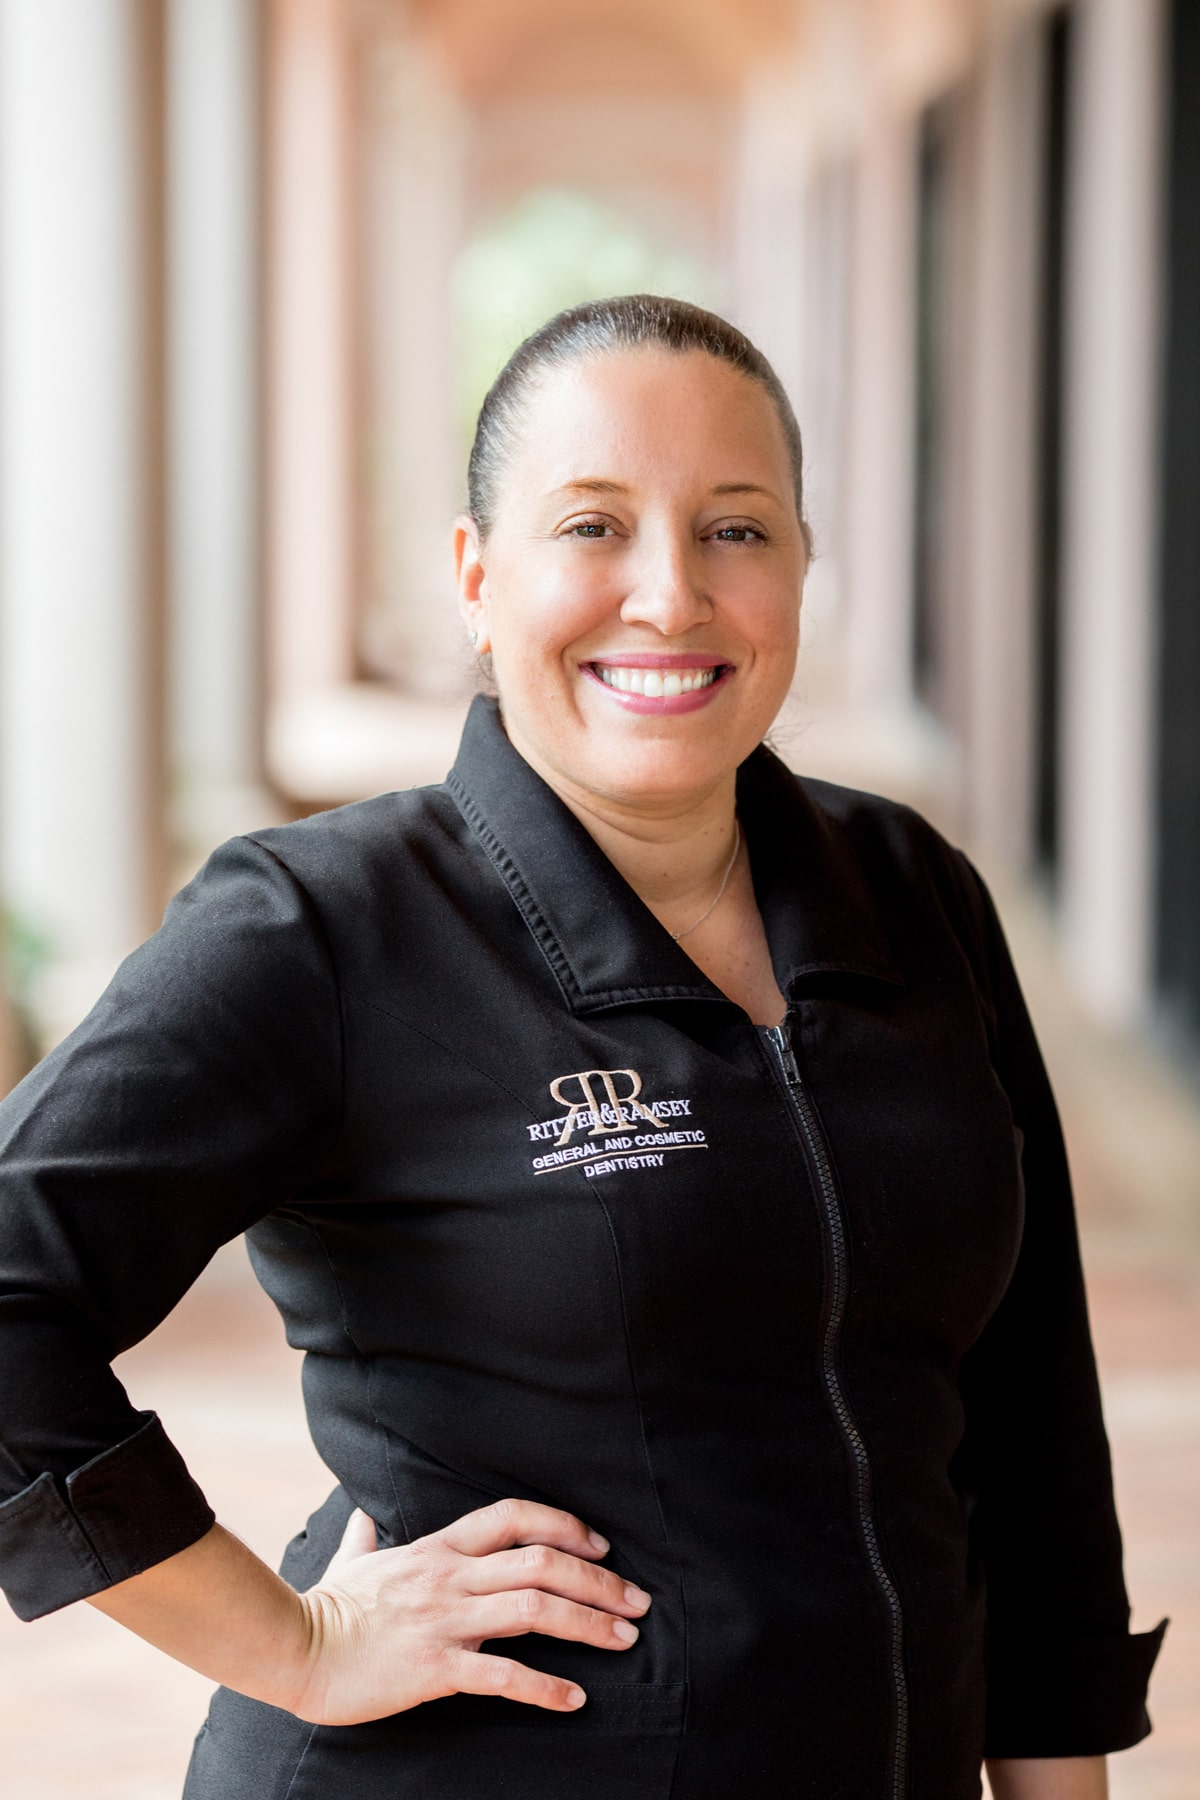 Meet Victoria at Ritter & Ramsey General And Cosmetic Dentistry in Jupiter, FL.